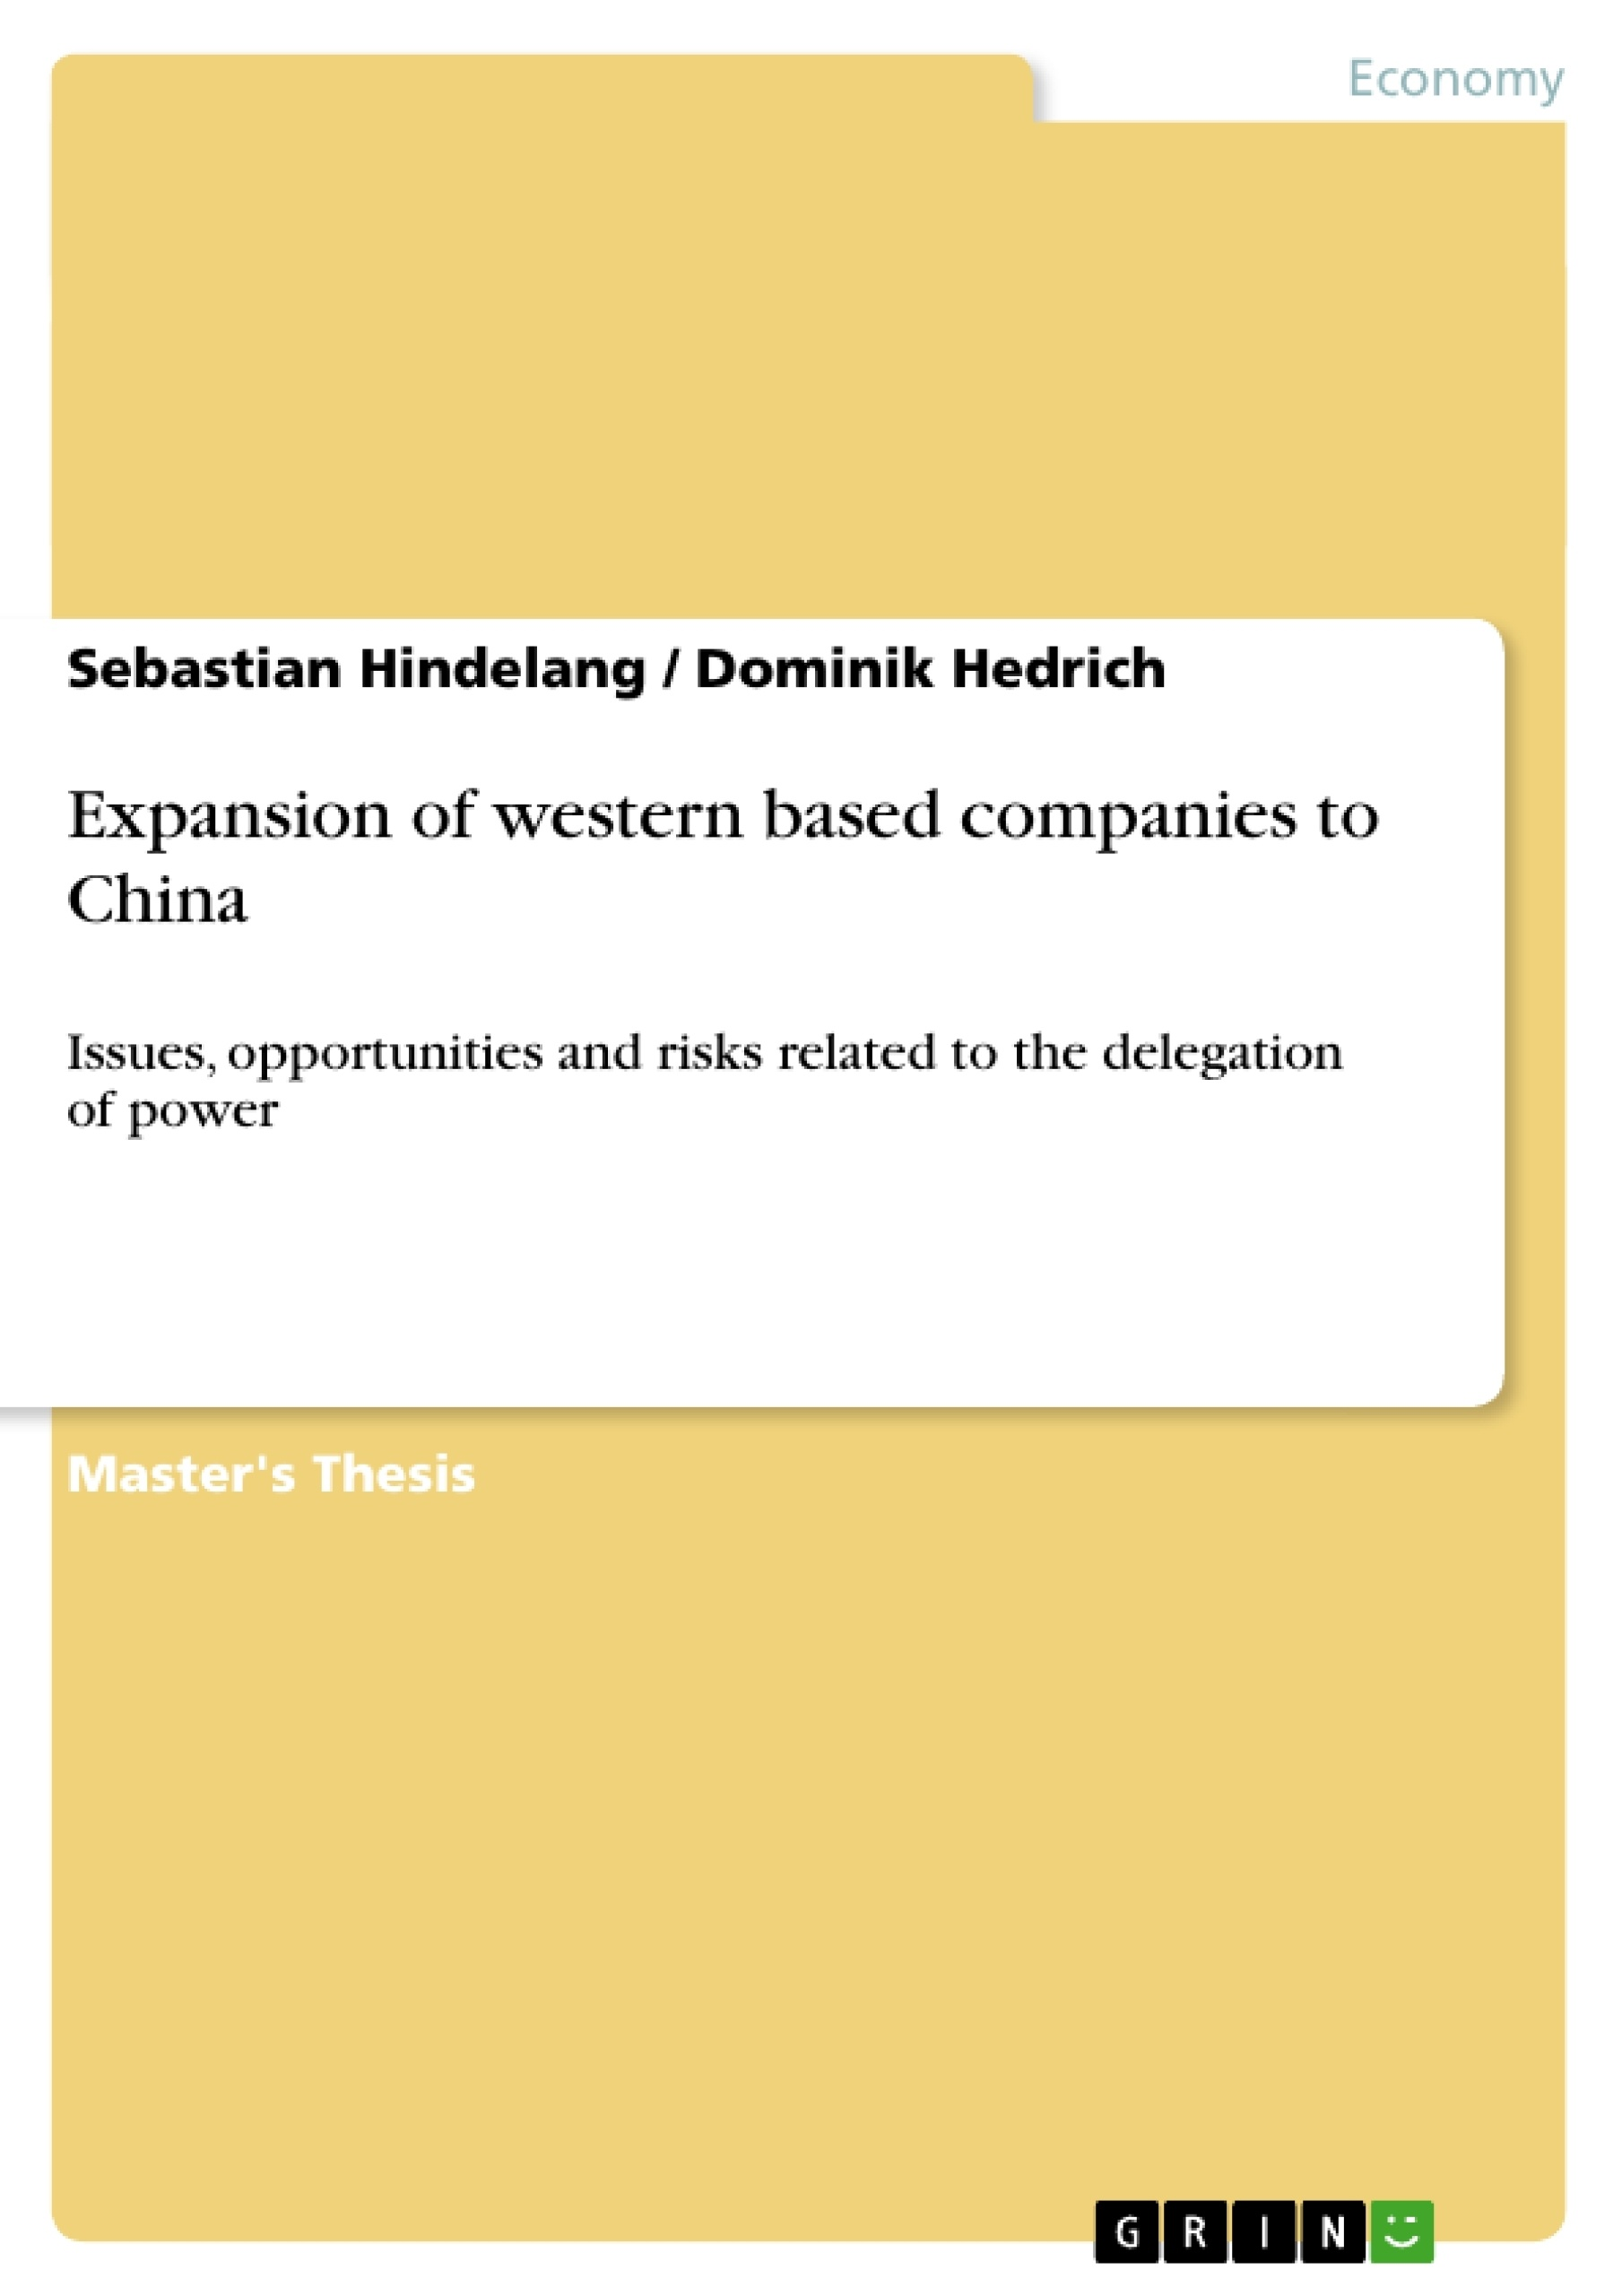 Title: Expansion of western based companies to China